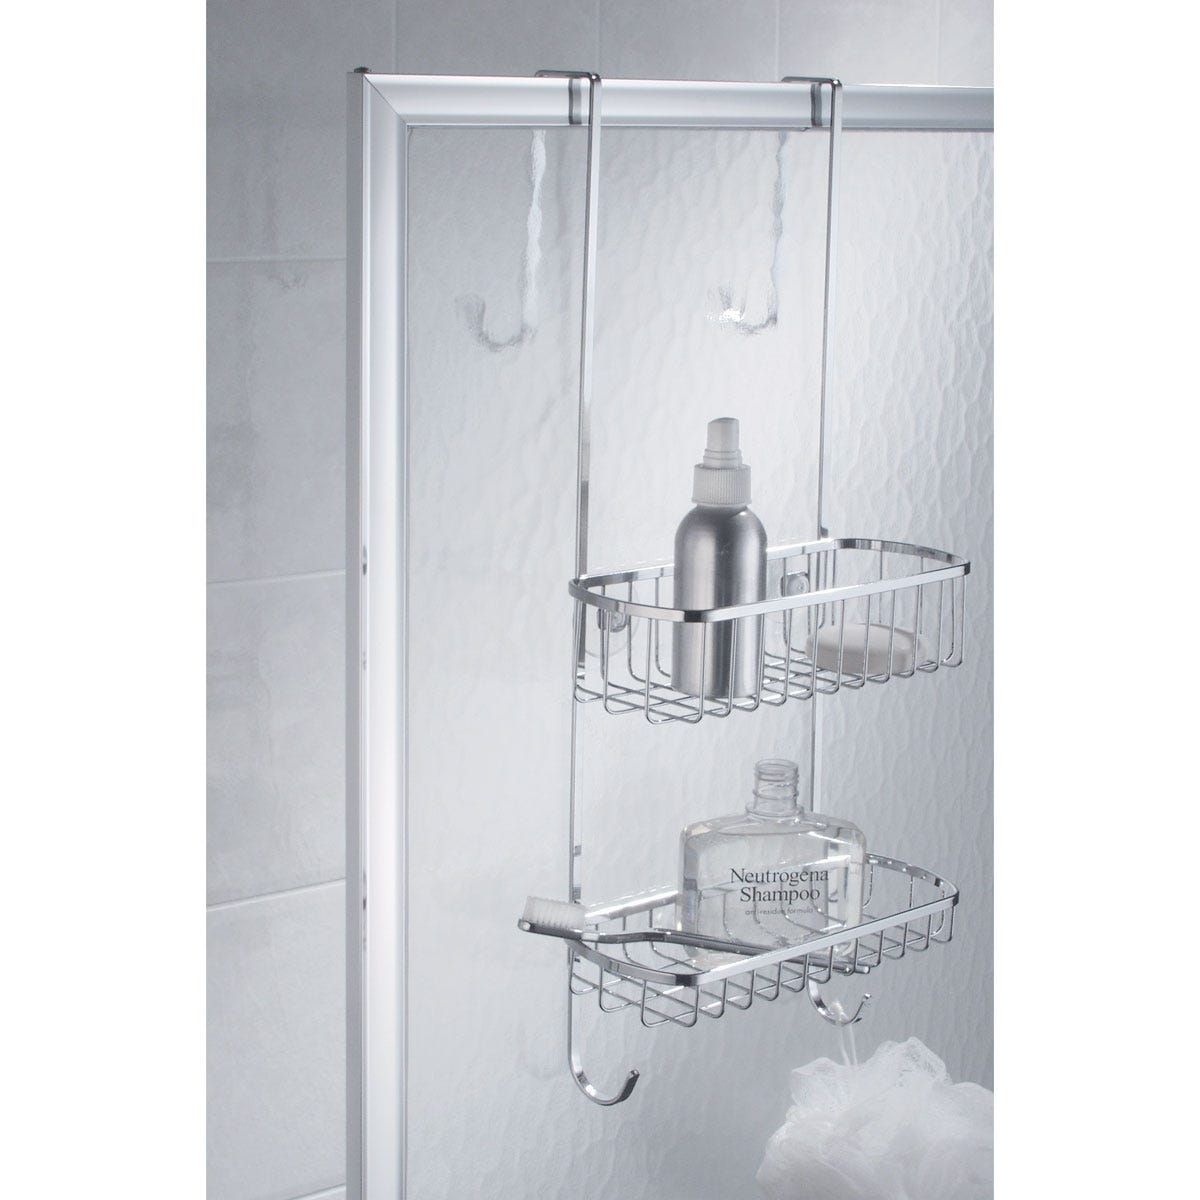 More Photos Over-the-Door Shower Caddy - from Sporty\u0027s Tool Shop